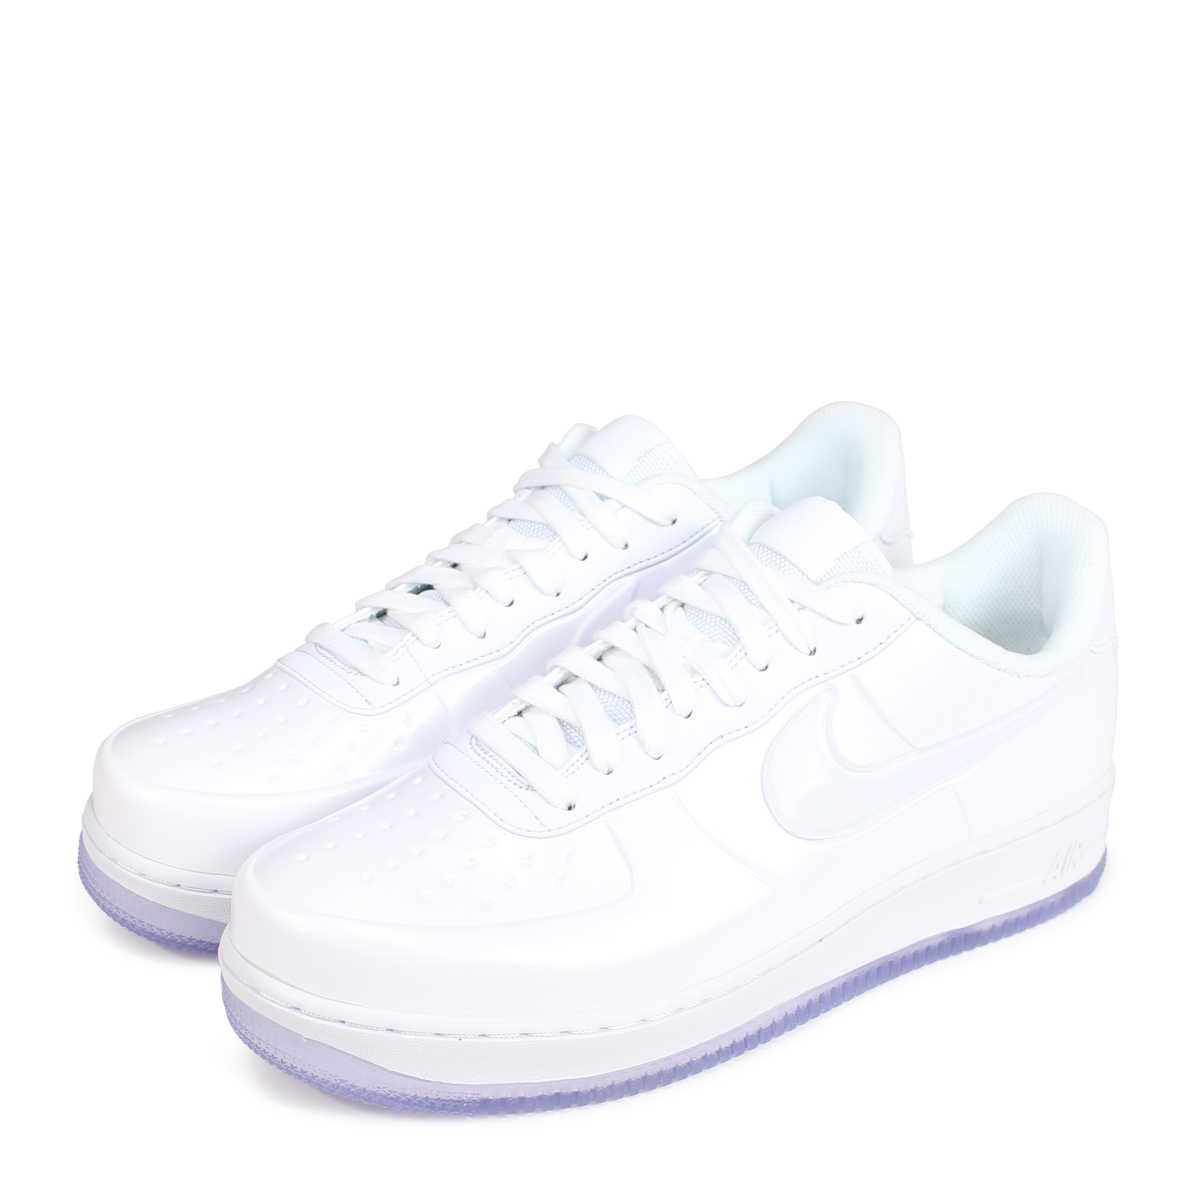 wholesale dealer cffe9 a11b8 NIKE AIR FORCE 1 FOAMPOSITE PRO CUP AF1 Nike air force 1 sneakers men  AJ3664- ...